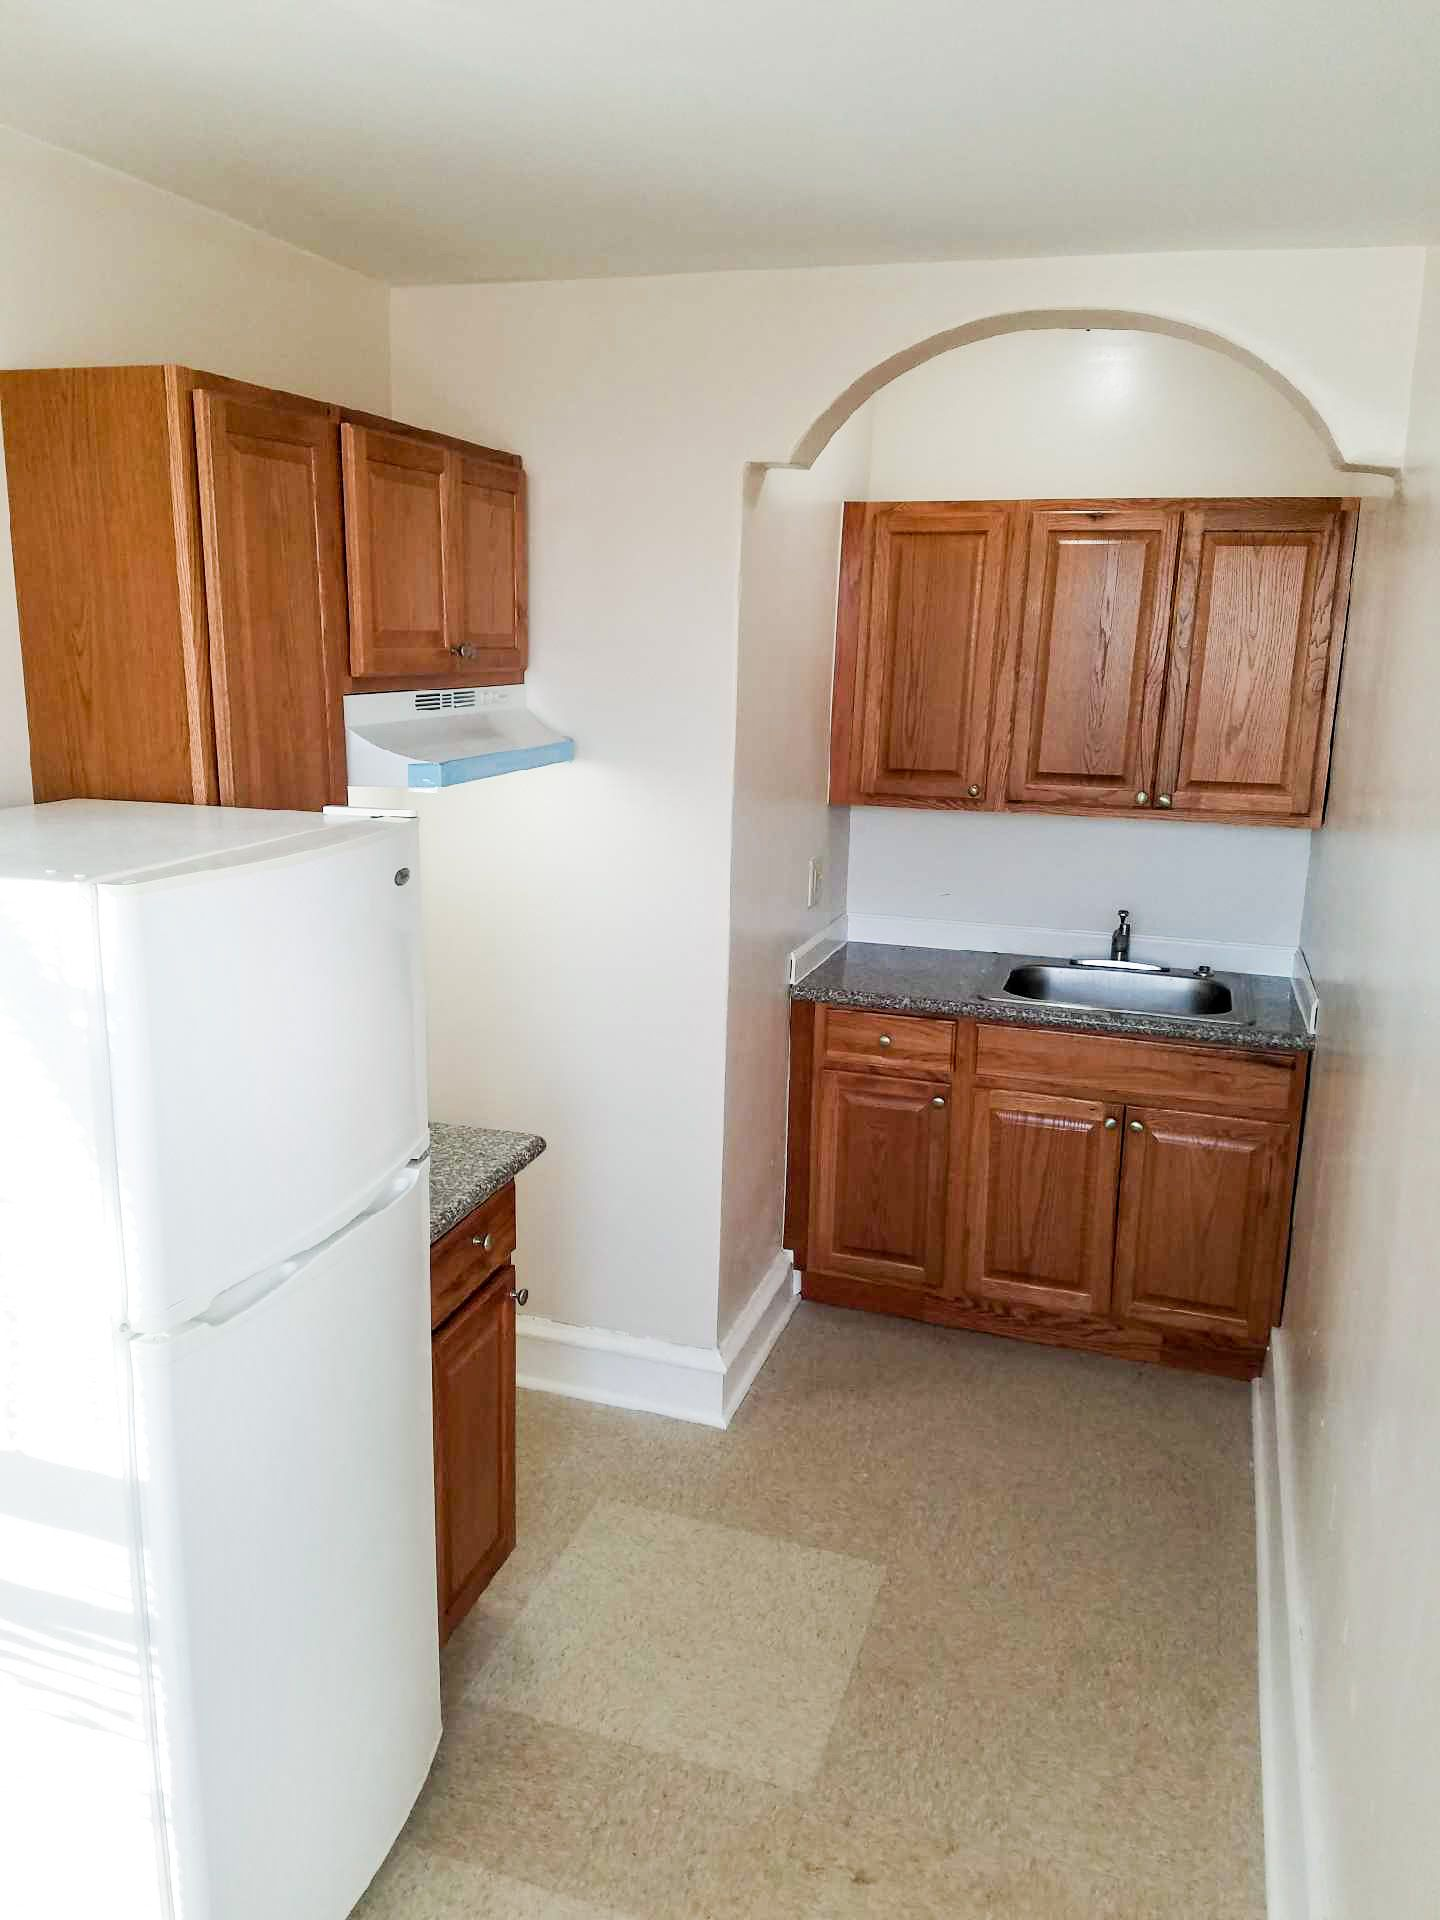 Newly Renovated 4209 Chester Ave Unit D1 Philadelphia Pa 19104 Is A 1 Bedroom Apartment Available N 1 Bedroom Apartment Apartments For Rent Bedroom Apartment